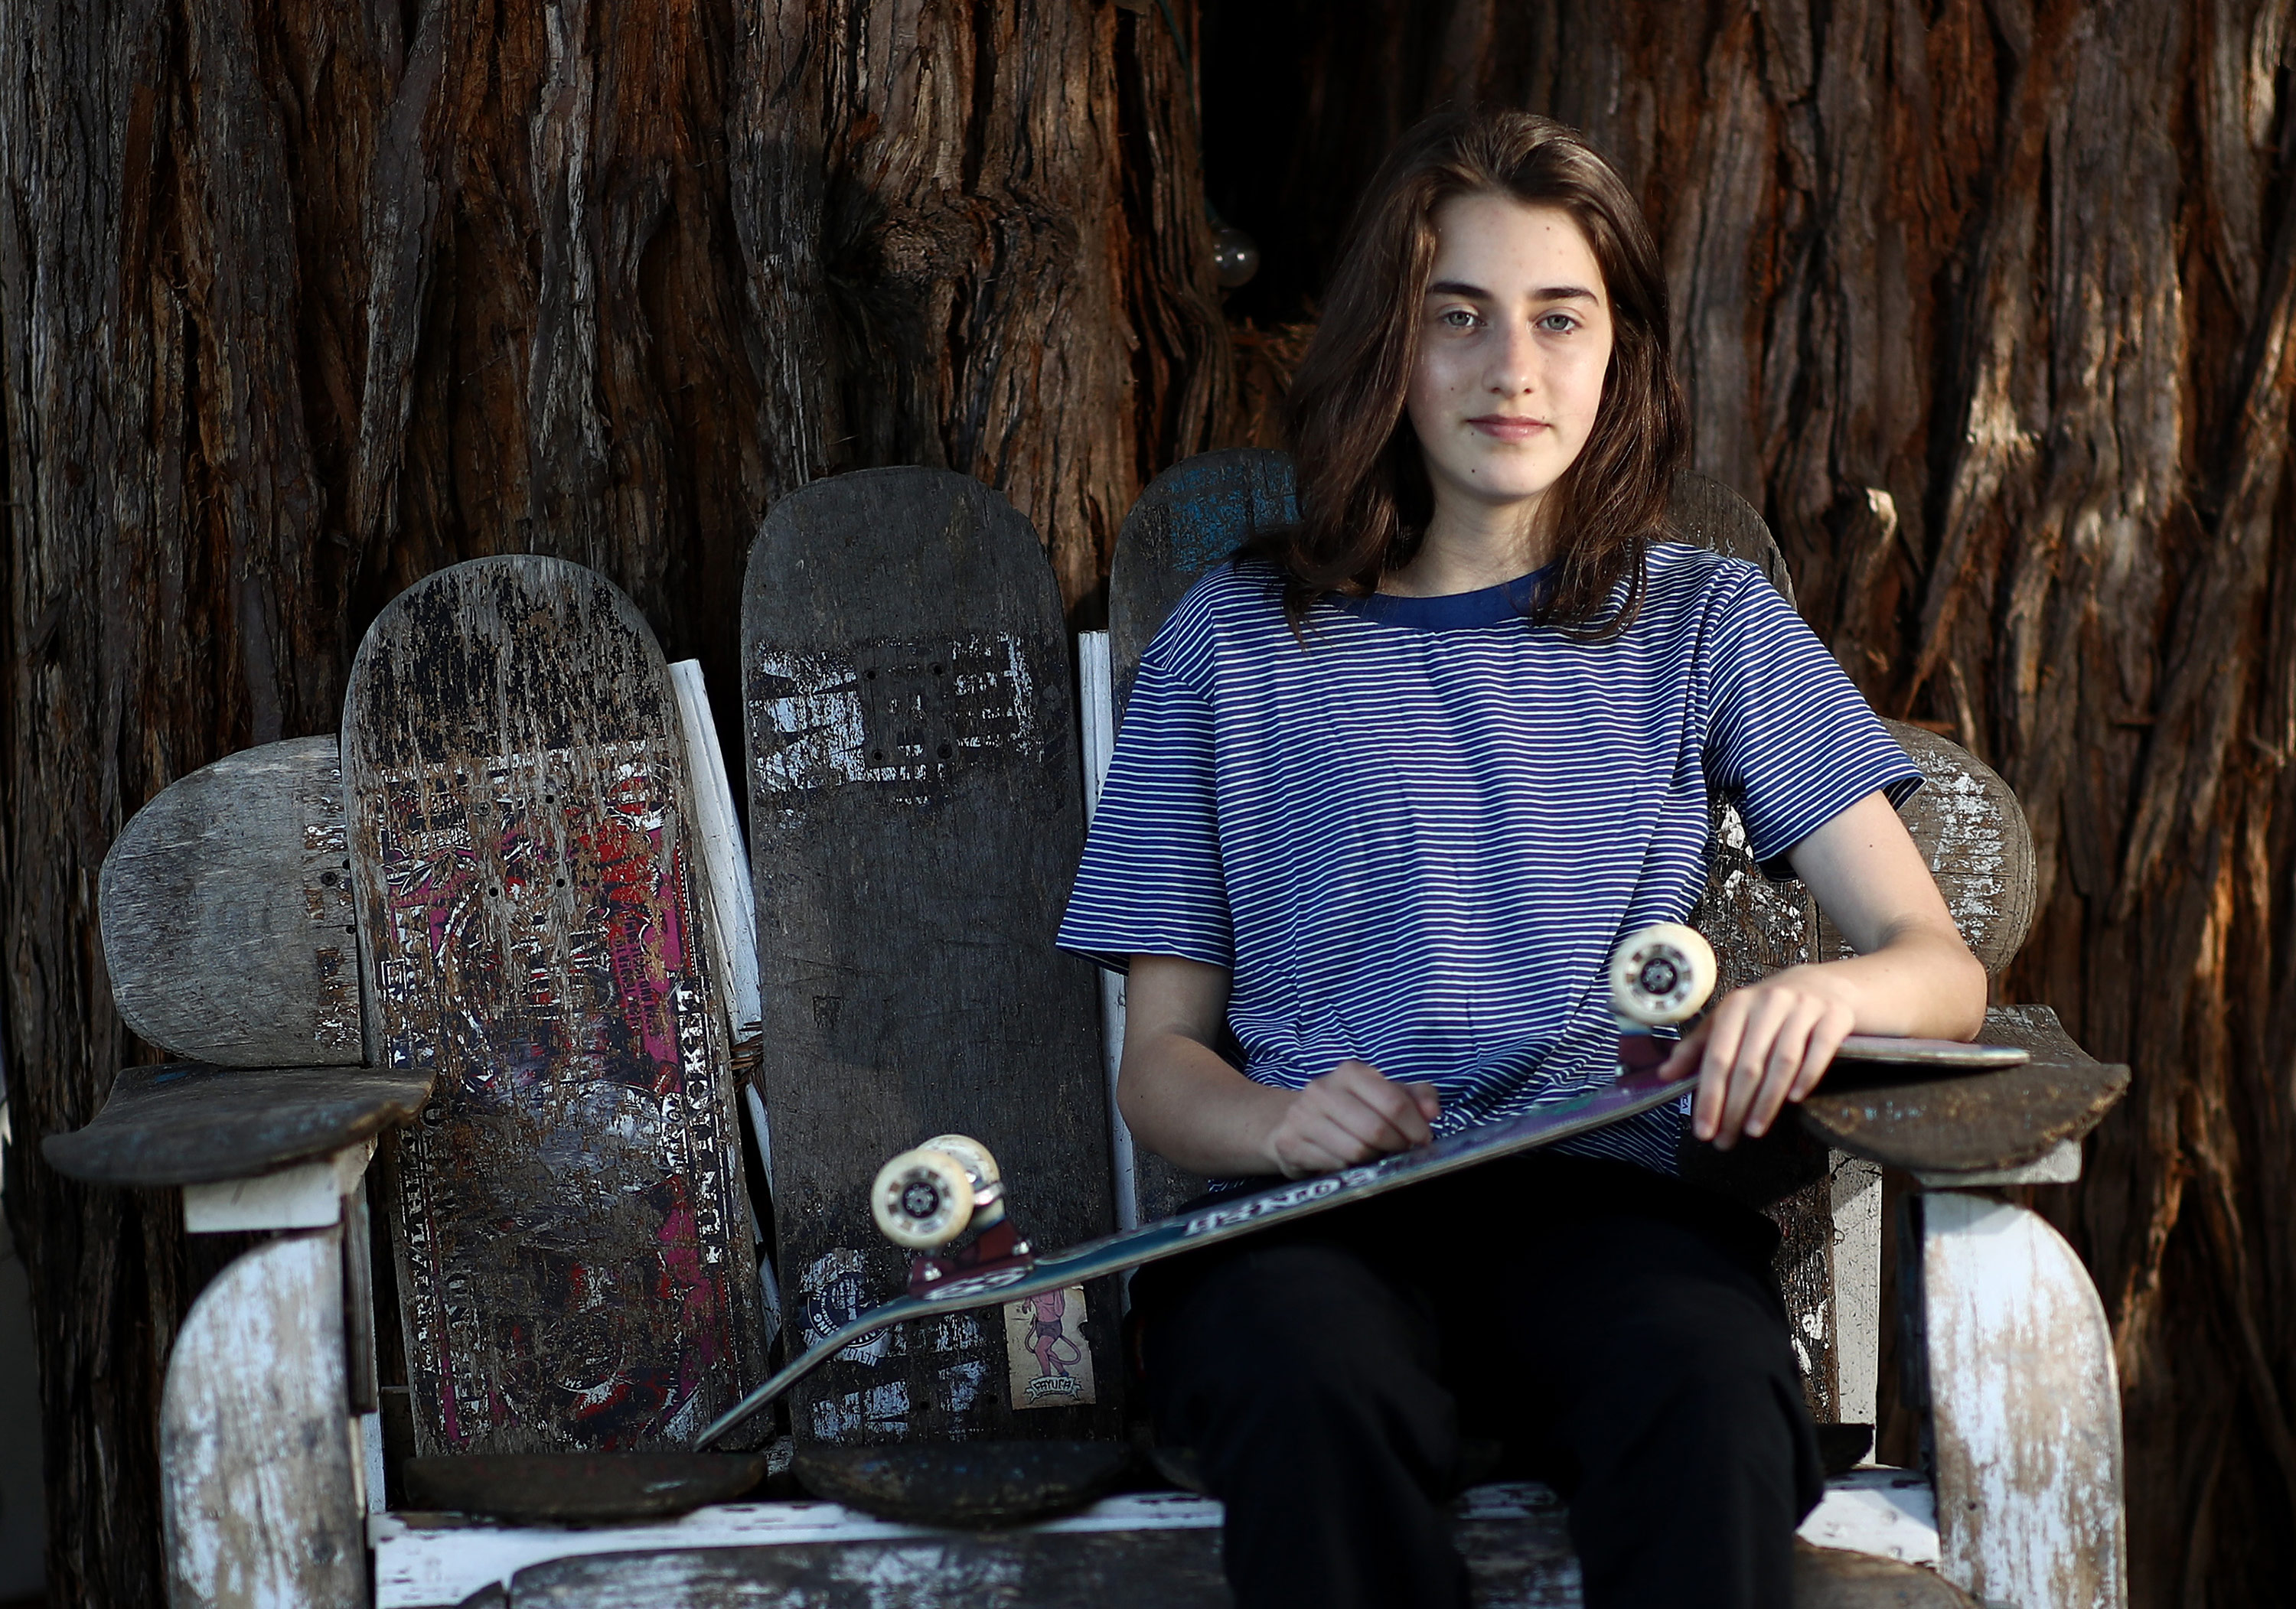 Minna Stess: 14-year-old skateboarding prodigy chases Olympic dream